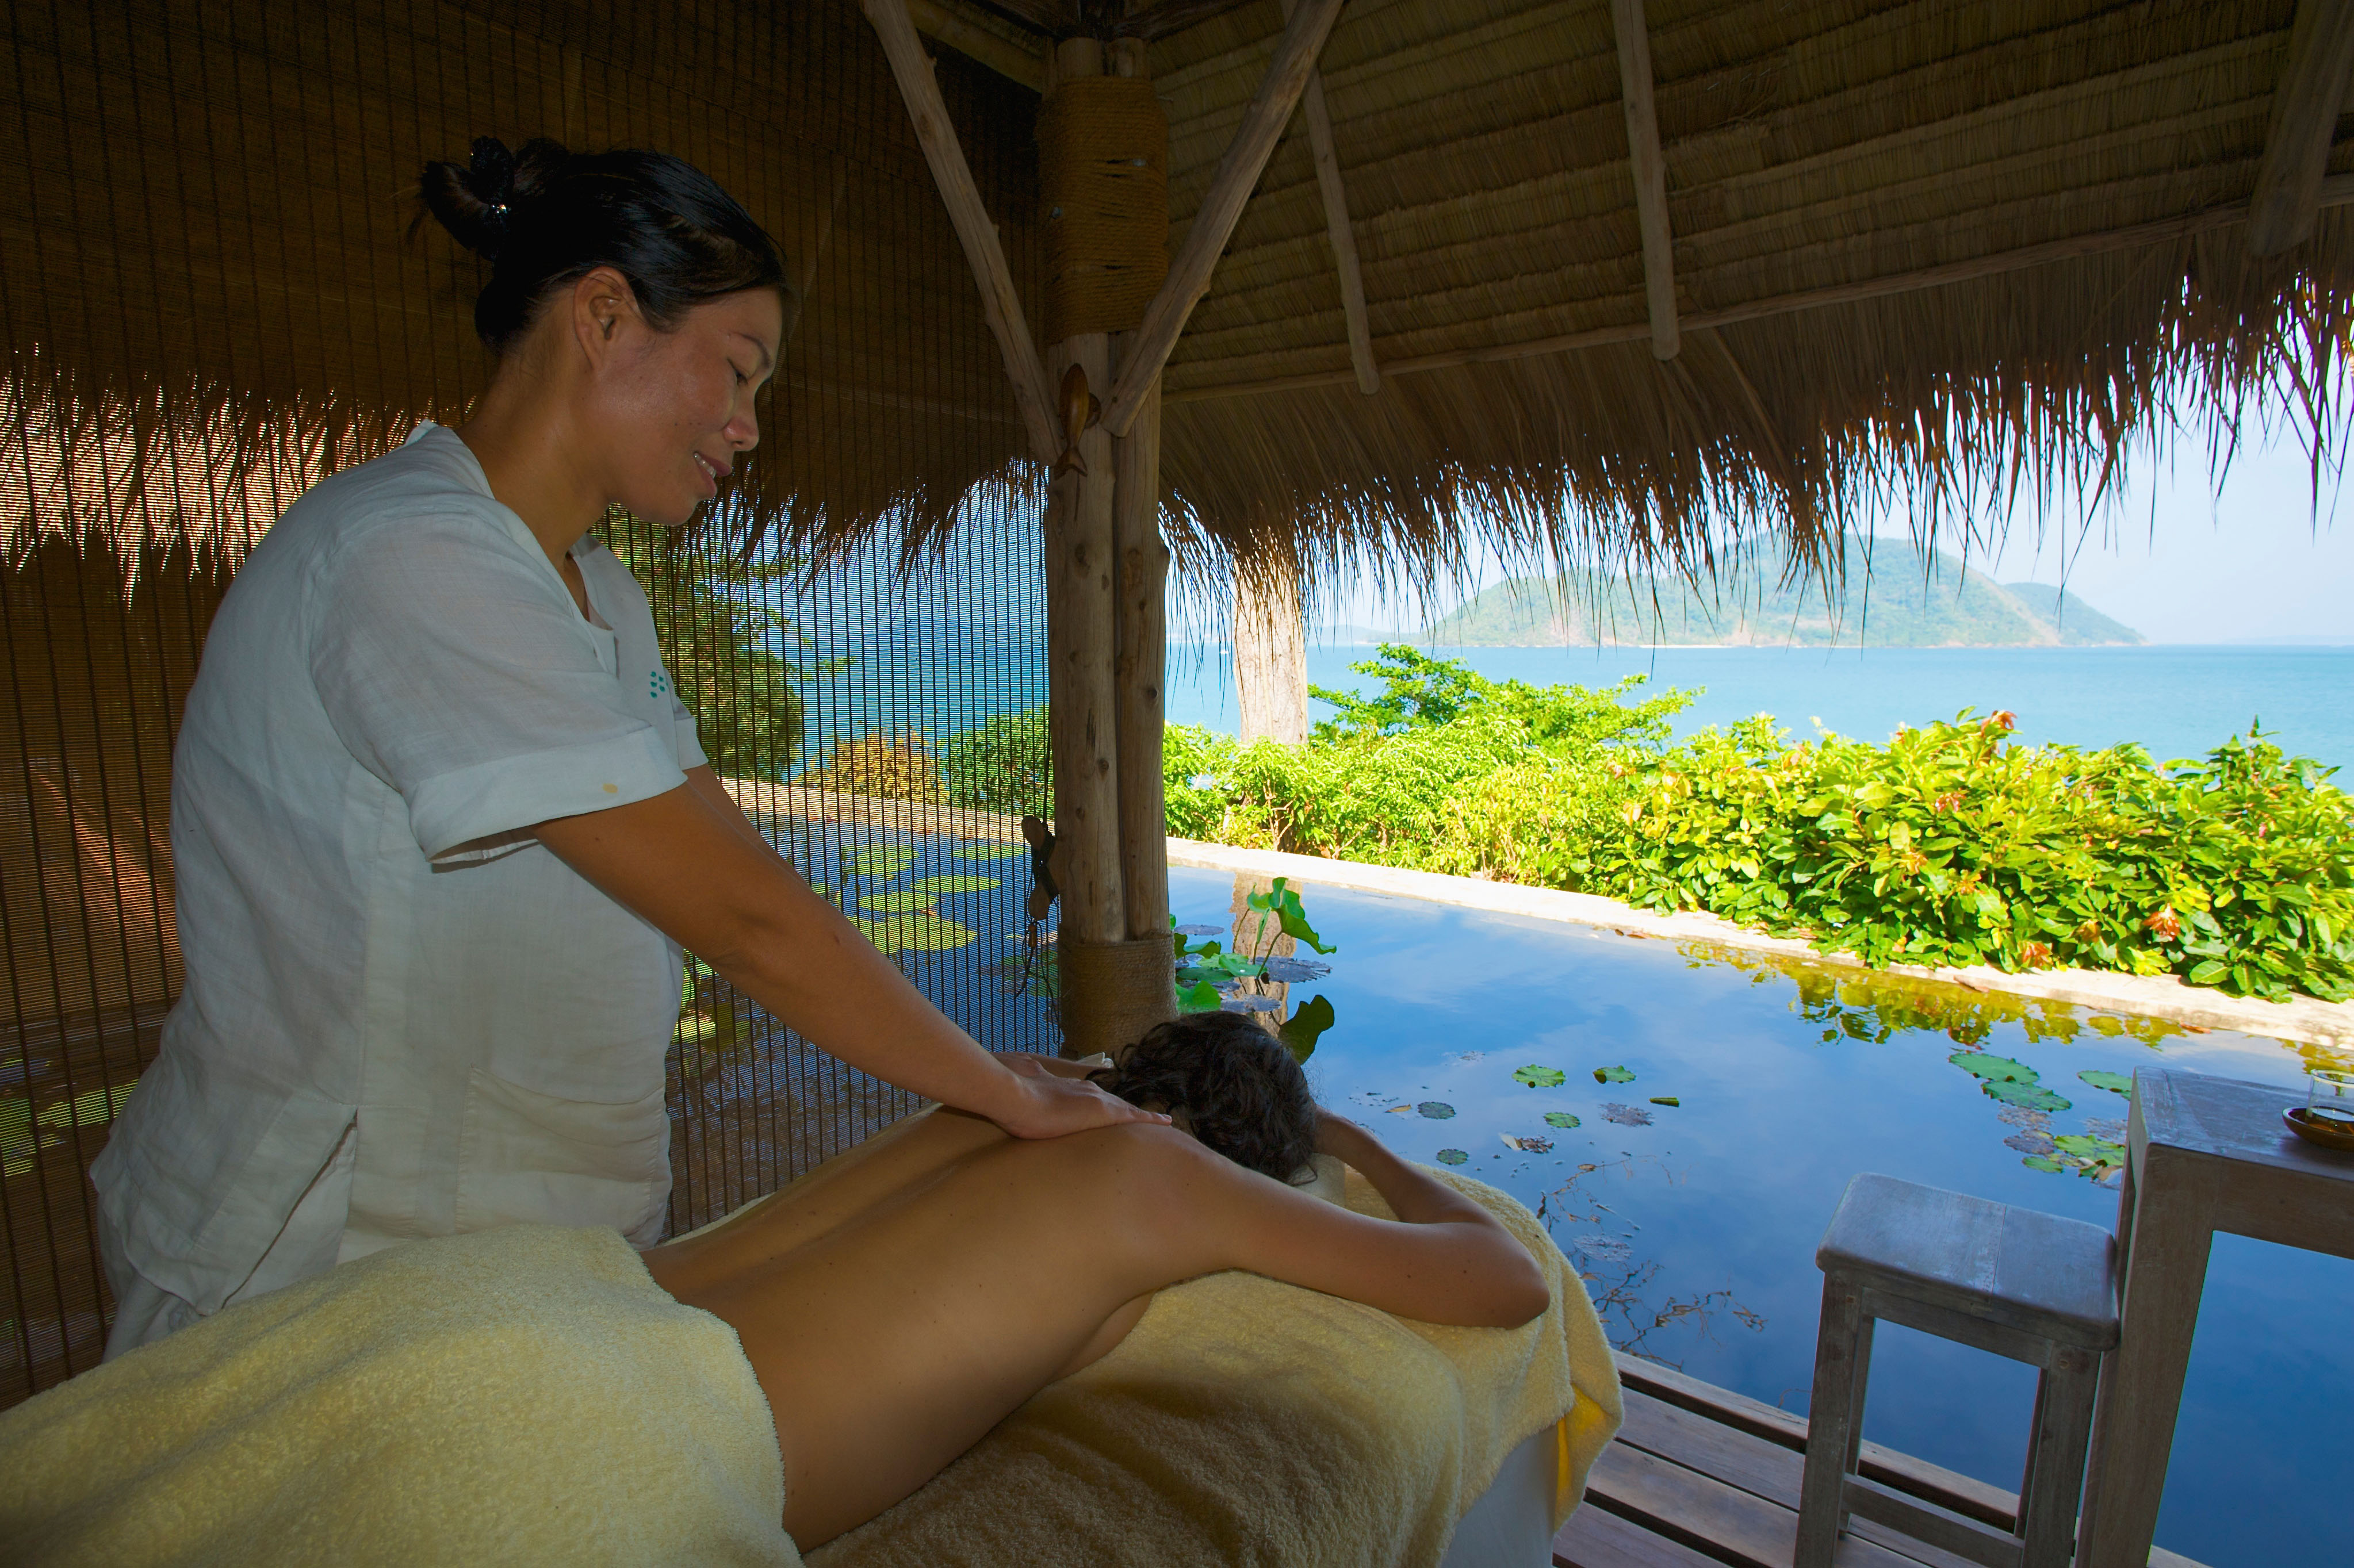 Spa And Thai Massage in Phuket - Every Detail You Need to